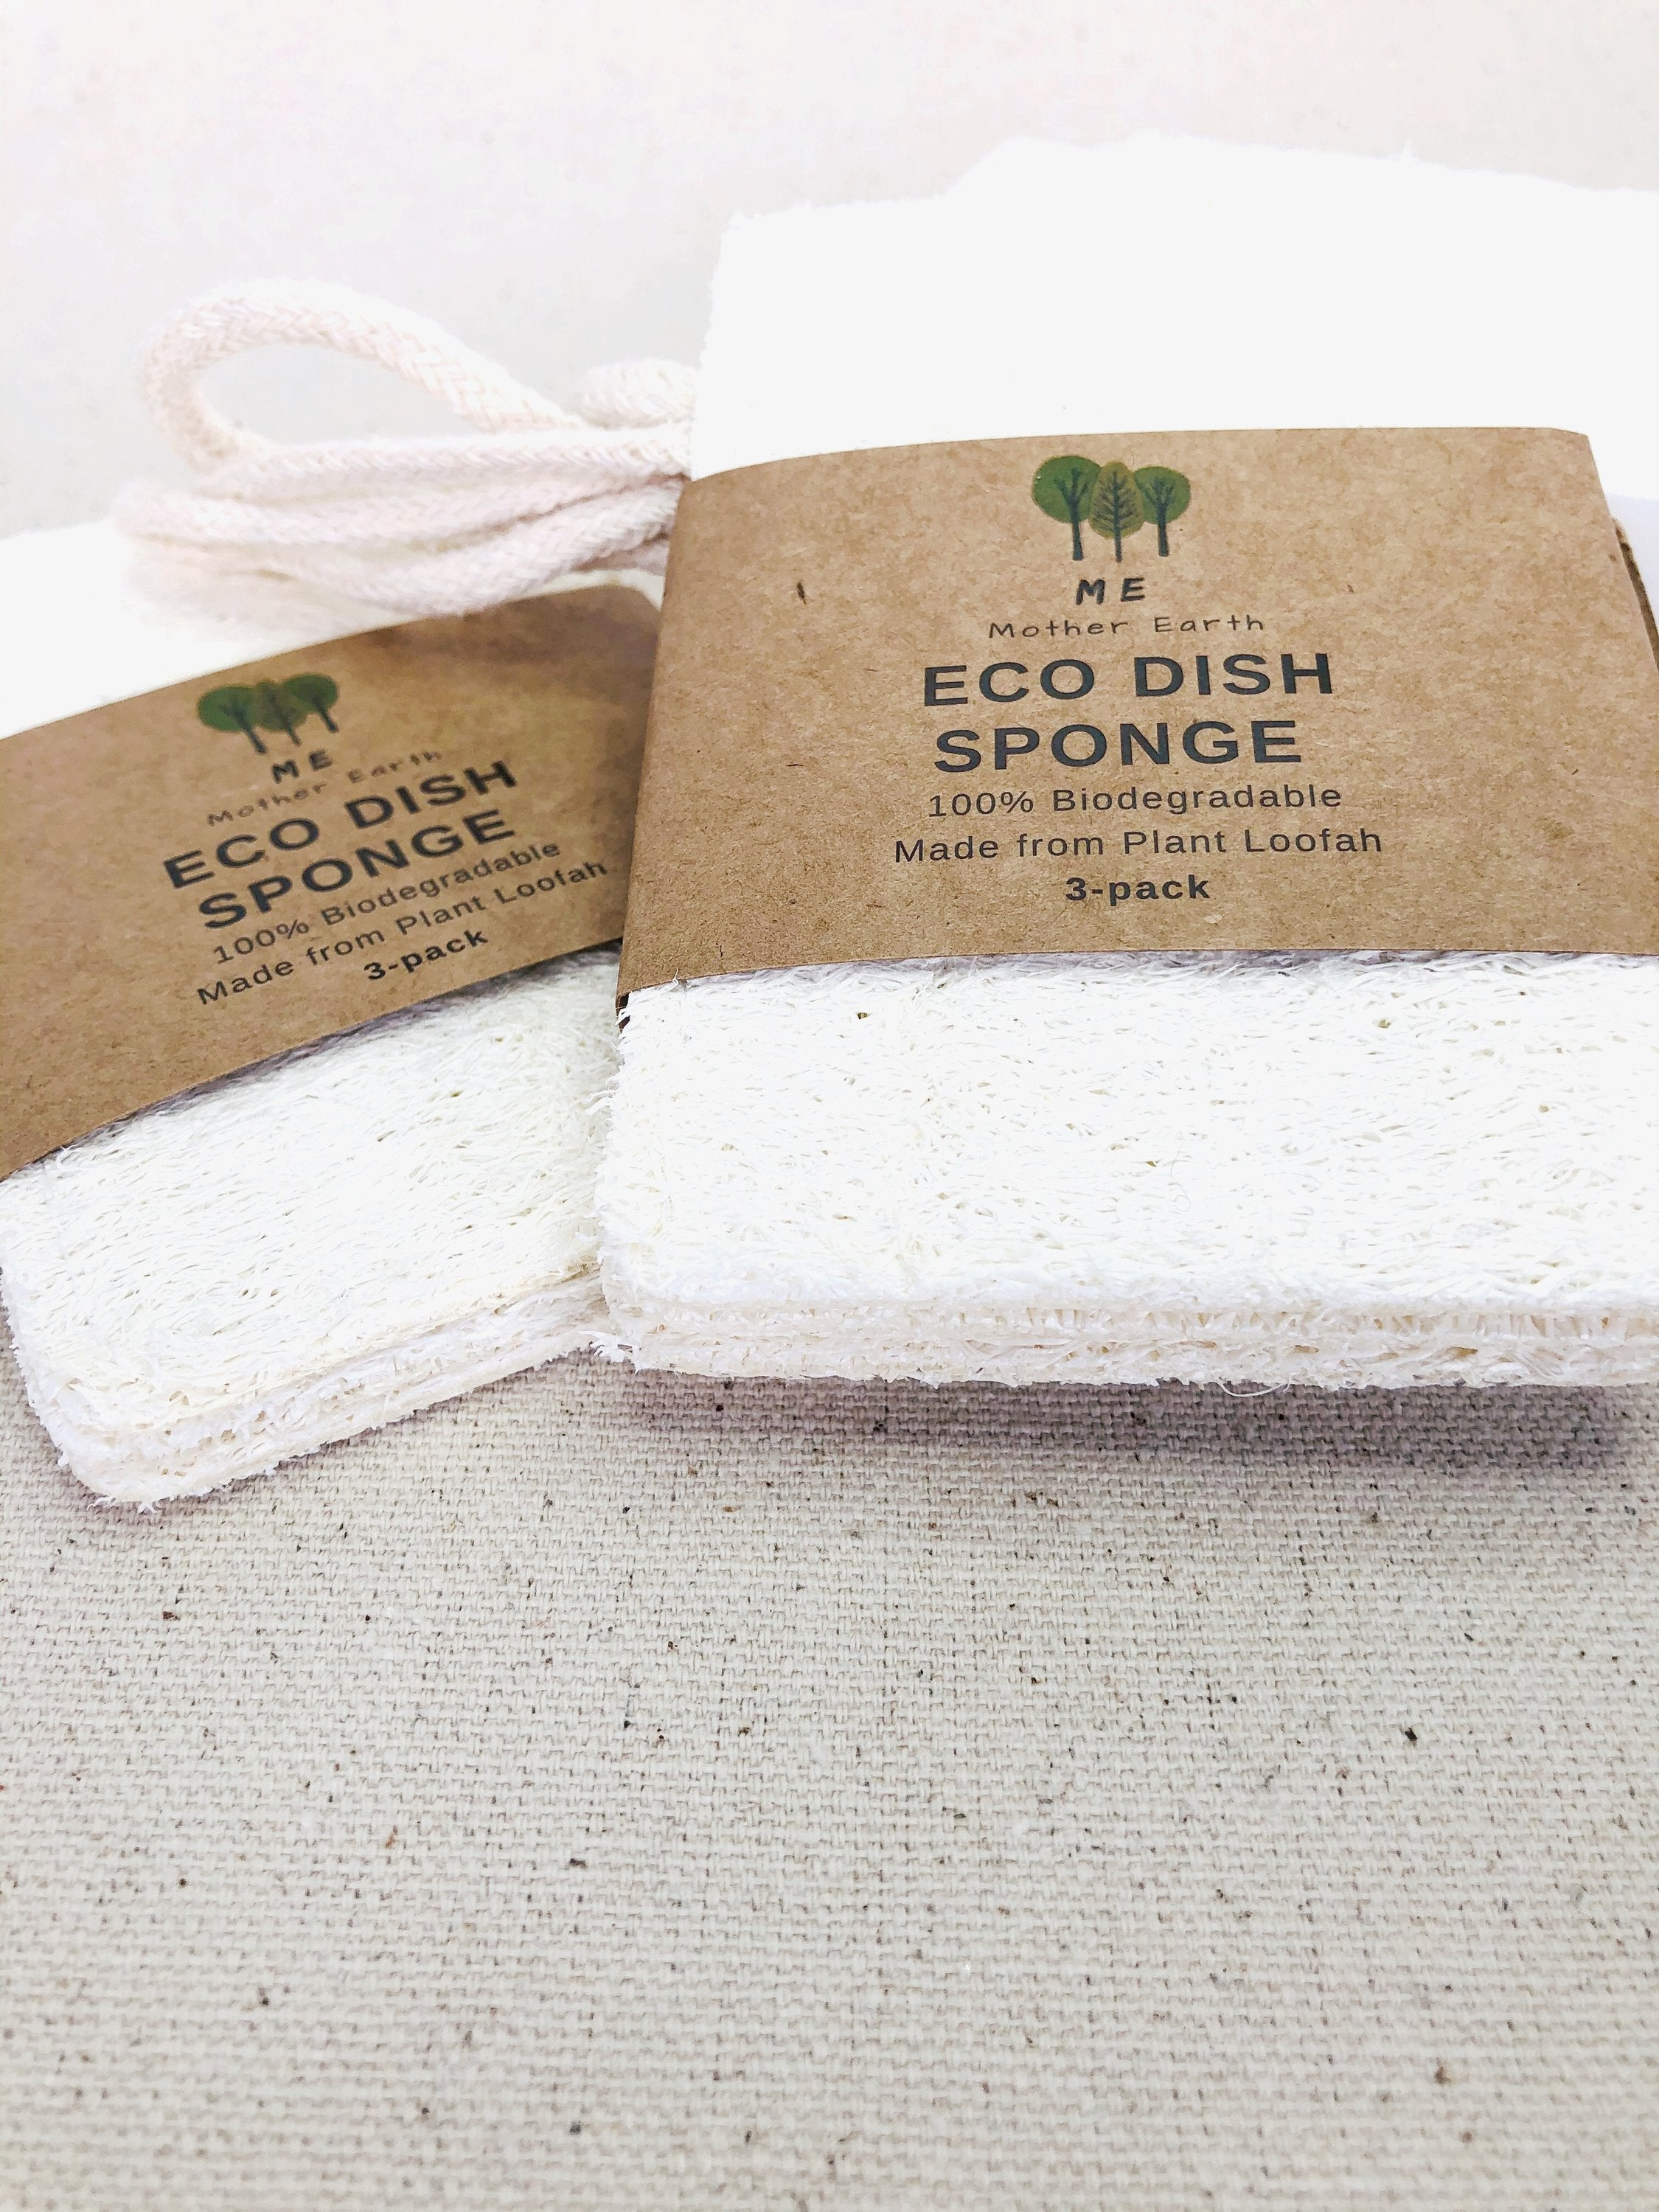 Eco dish sponge 3 pack on belloeco website